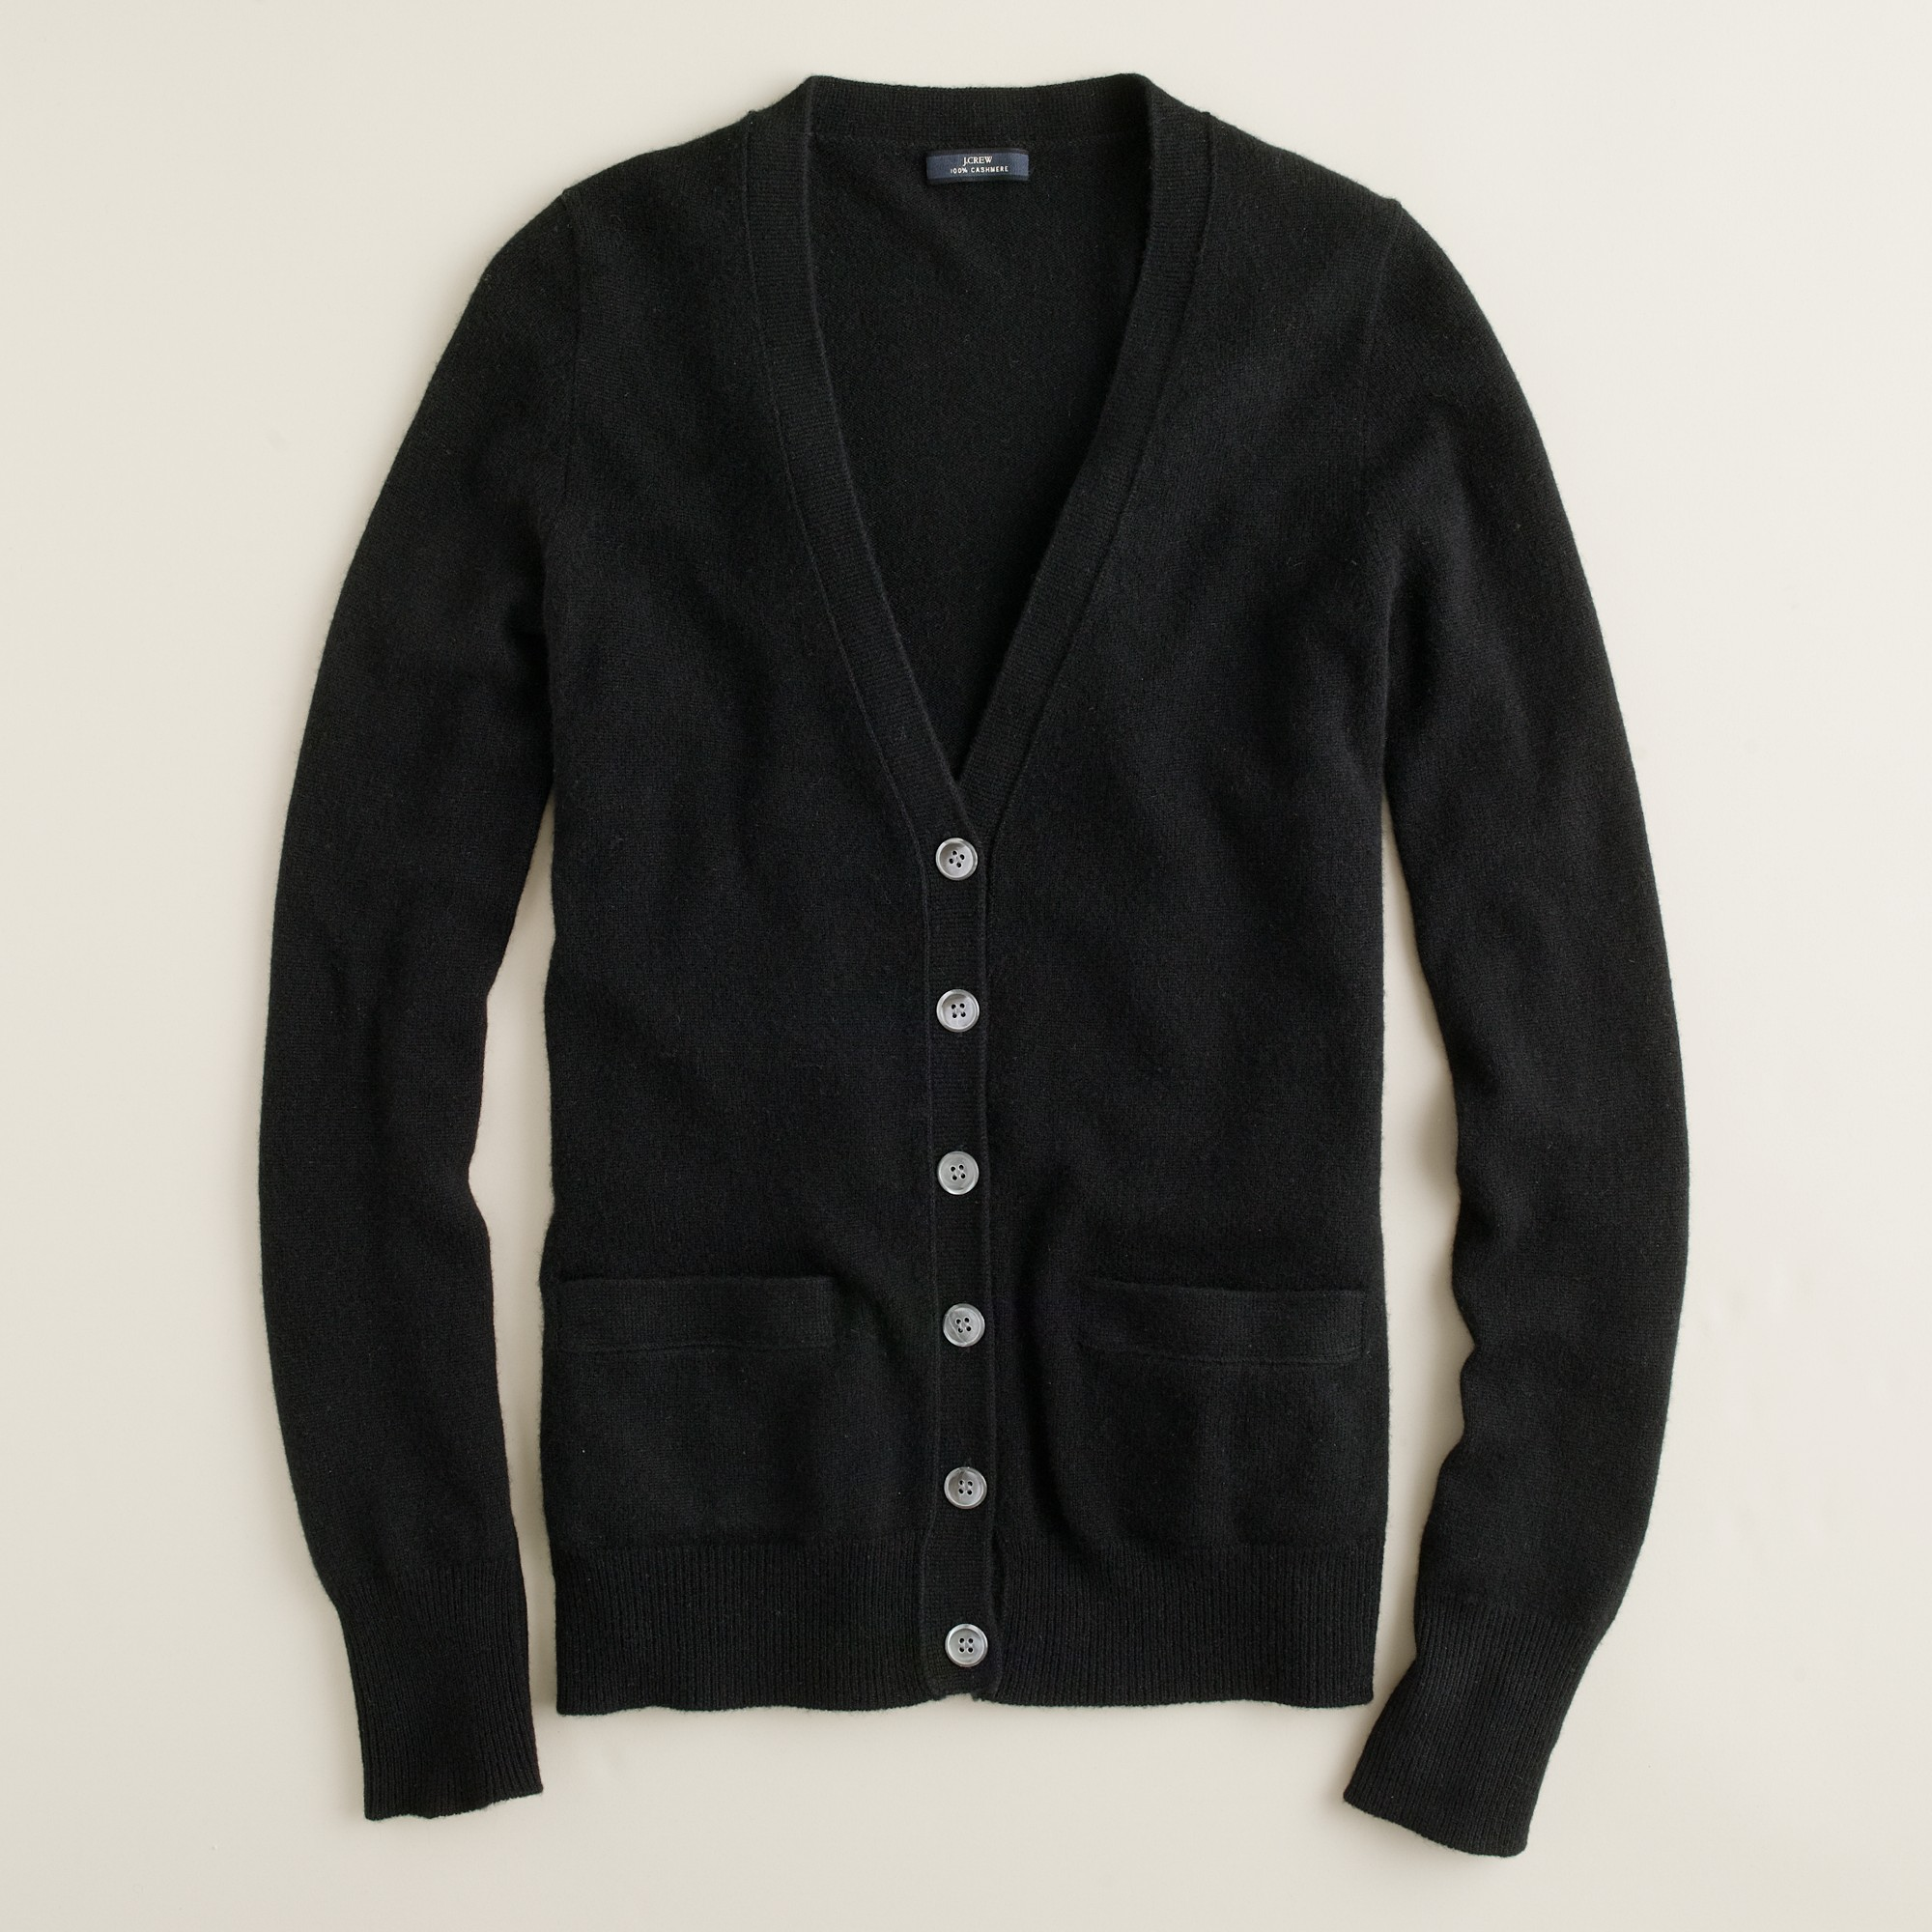 J.crew Collection Cashmere Boyfriend Cardigan Sweater in Black | Lyst